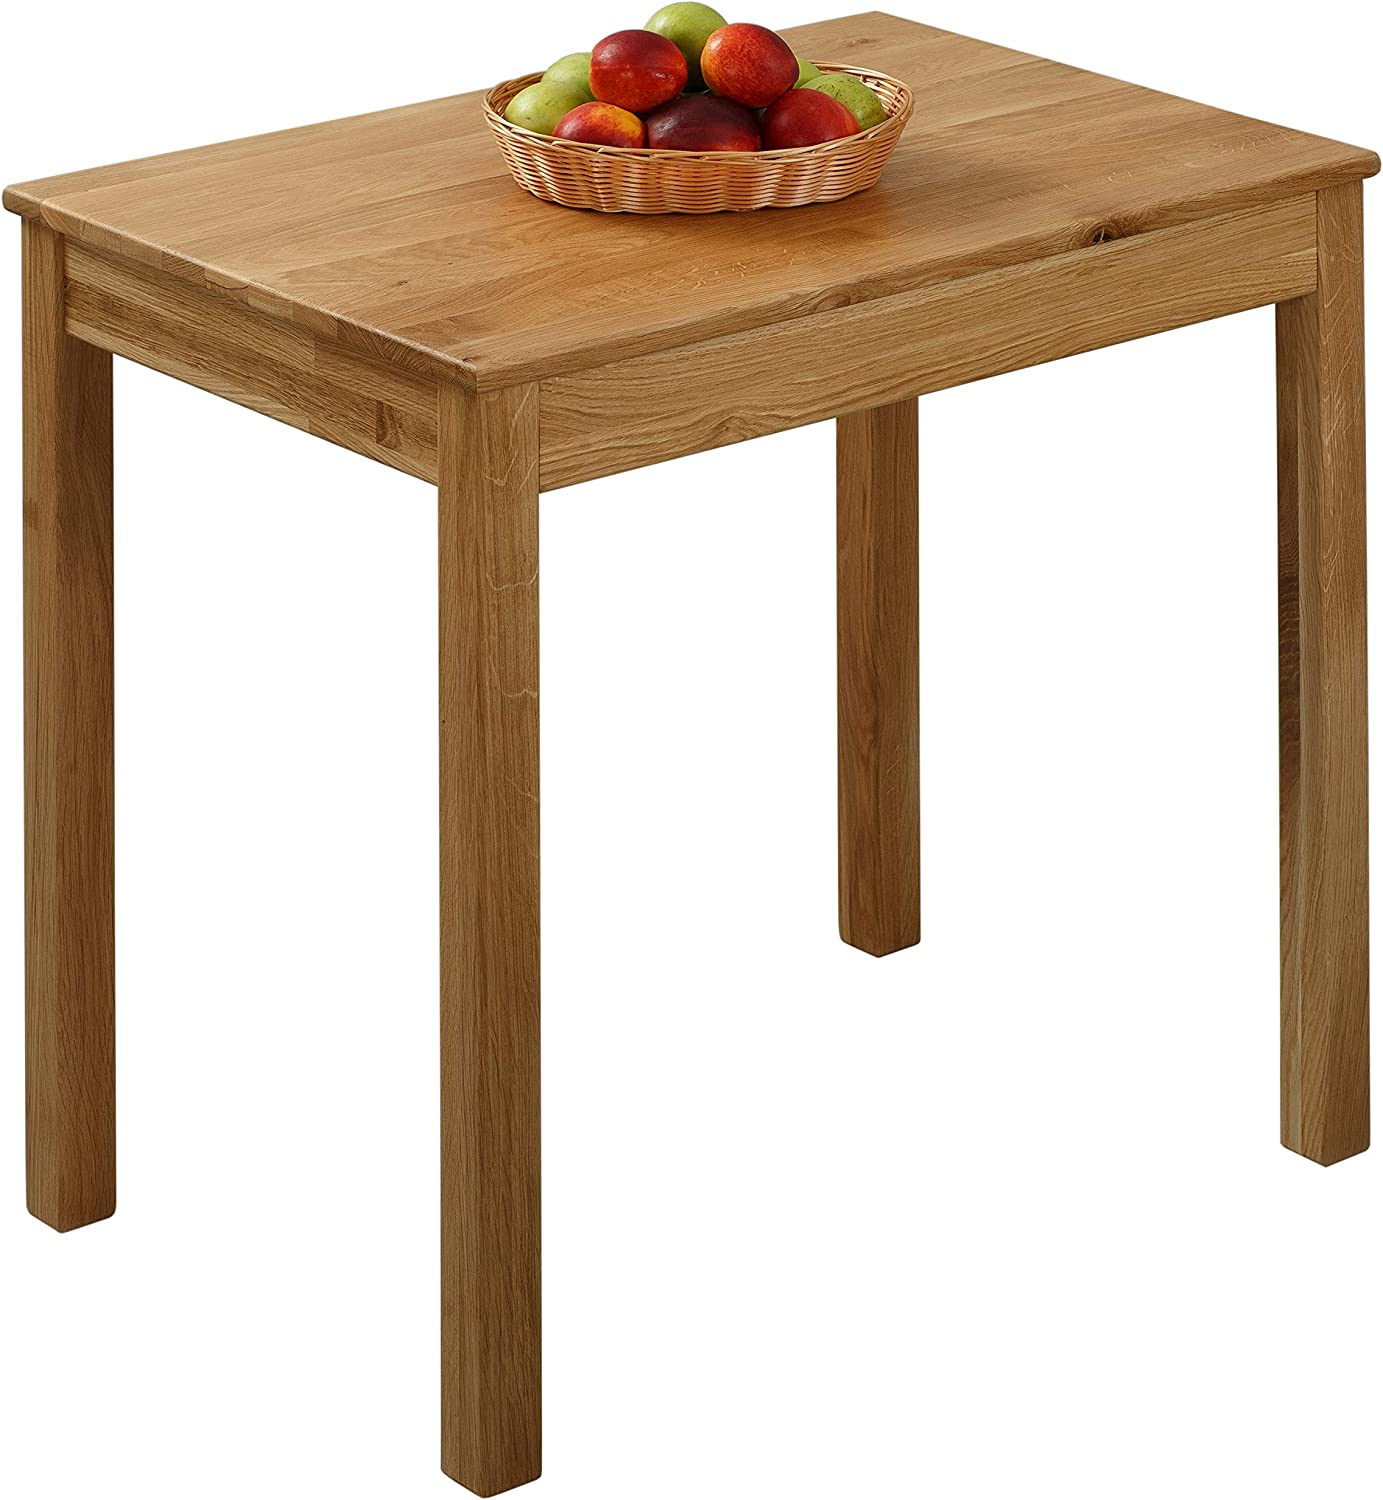 Krok Wood Dining Table Tomas Oak 75x50x75 cm